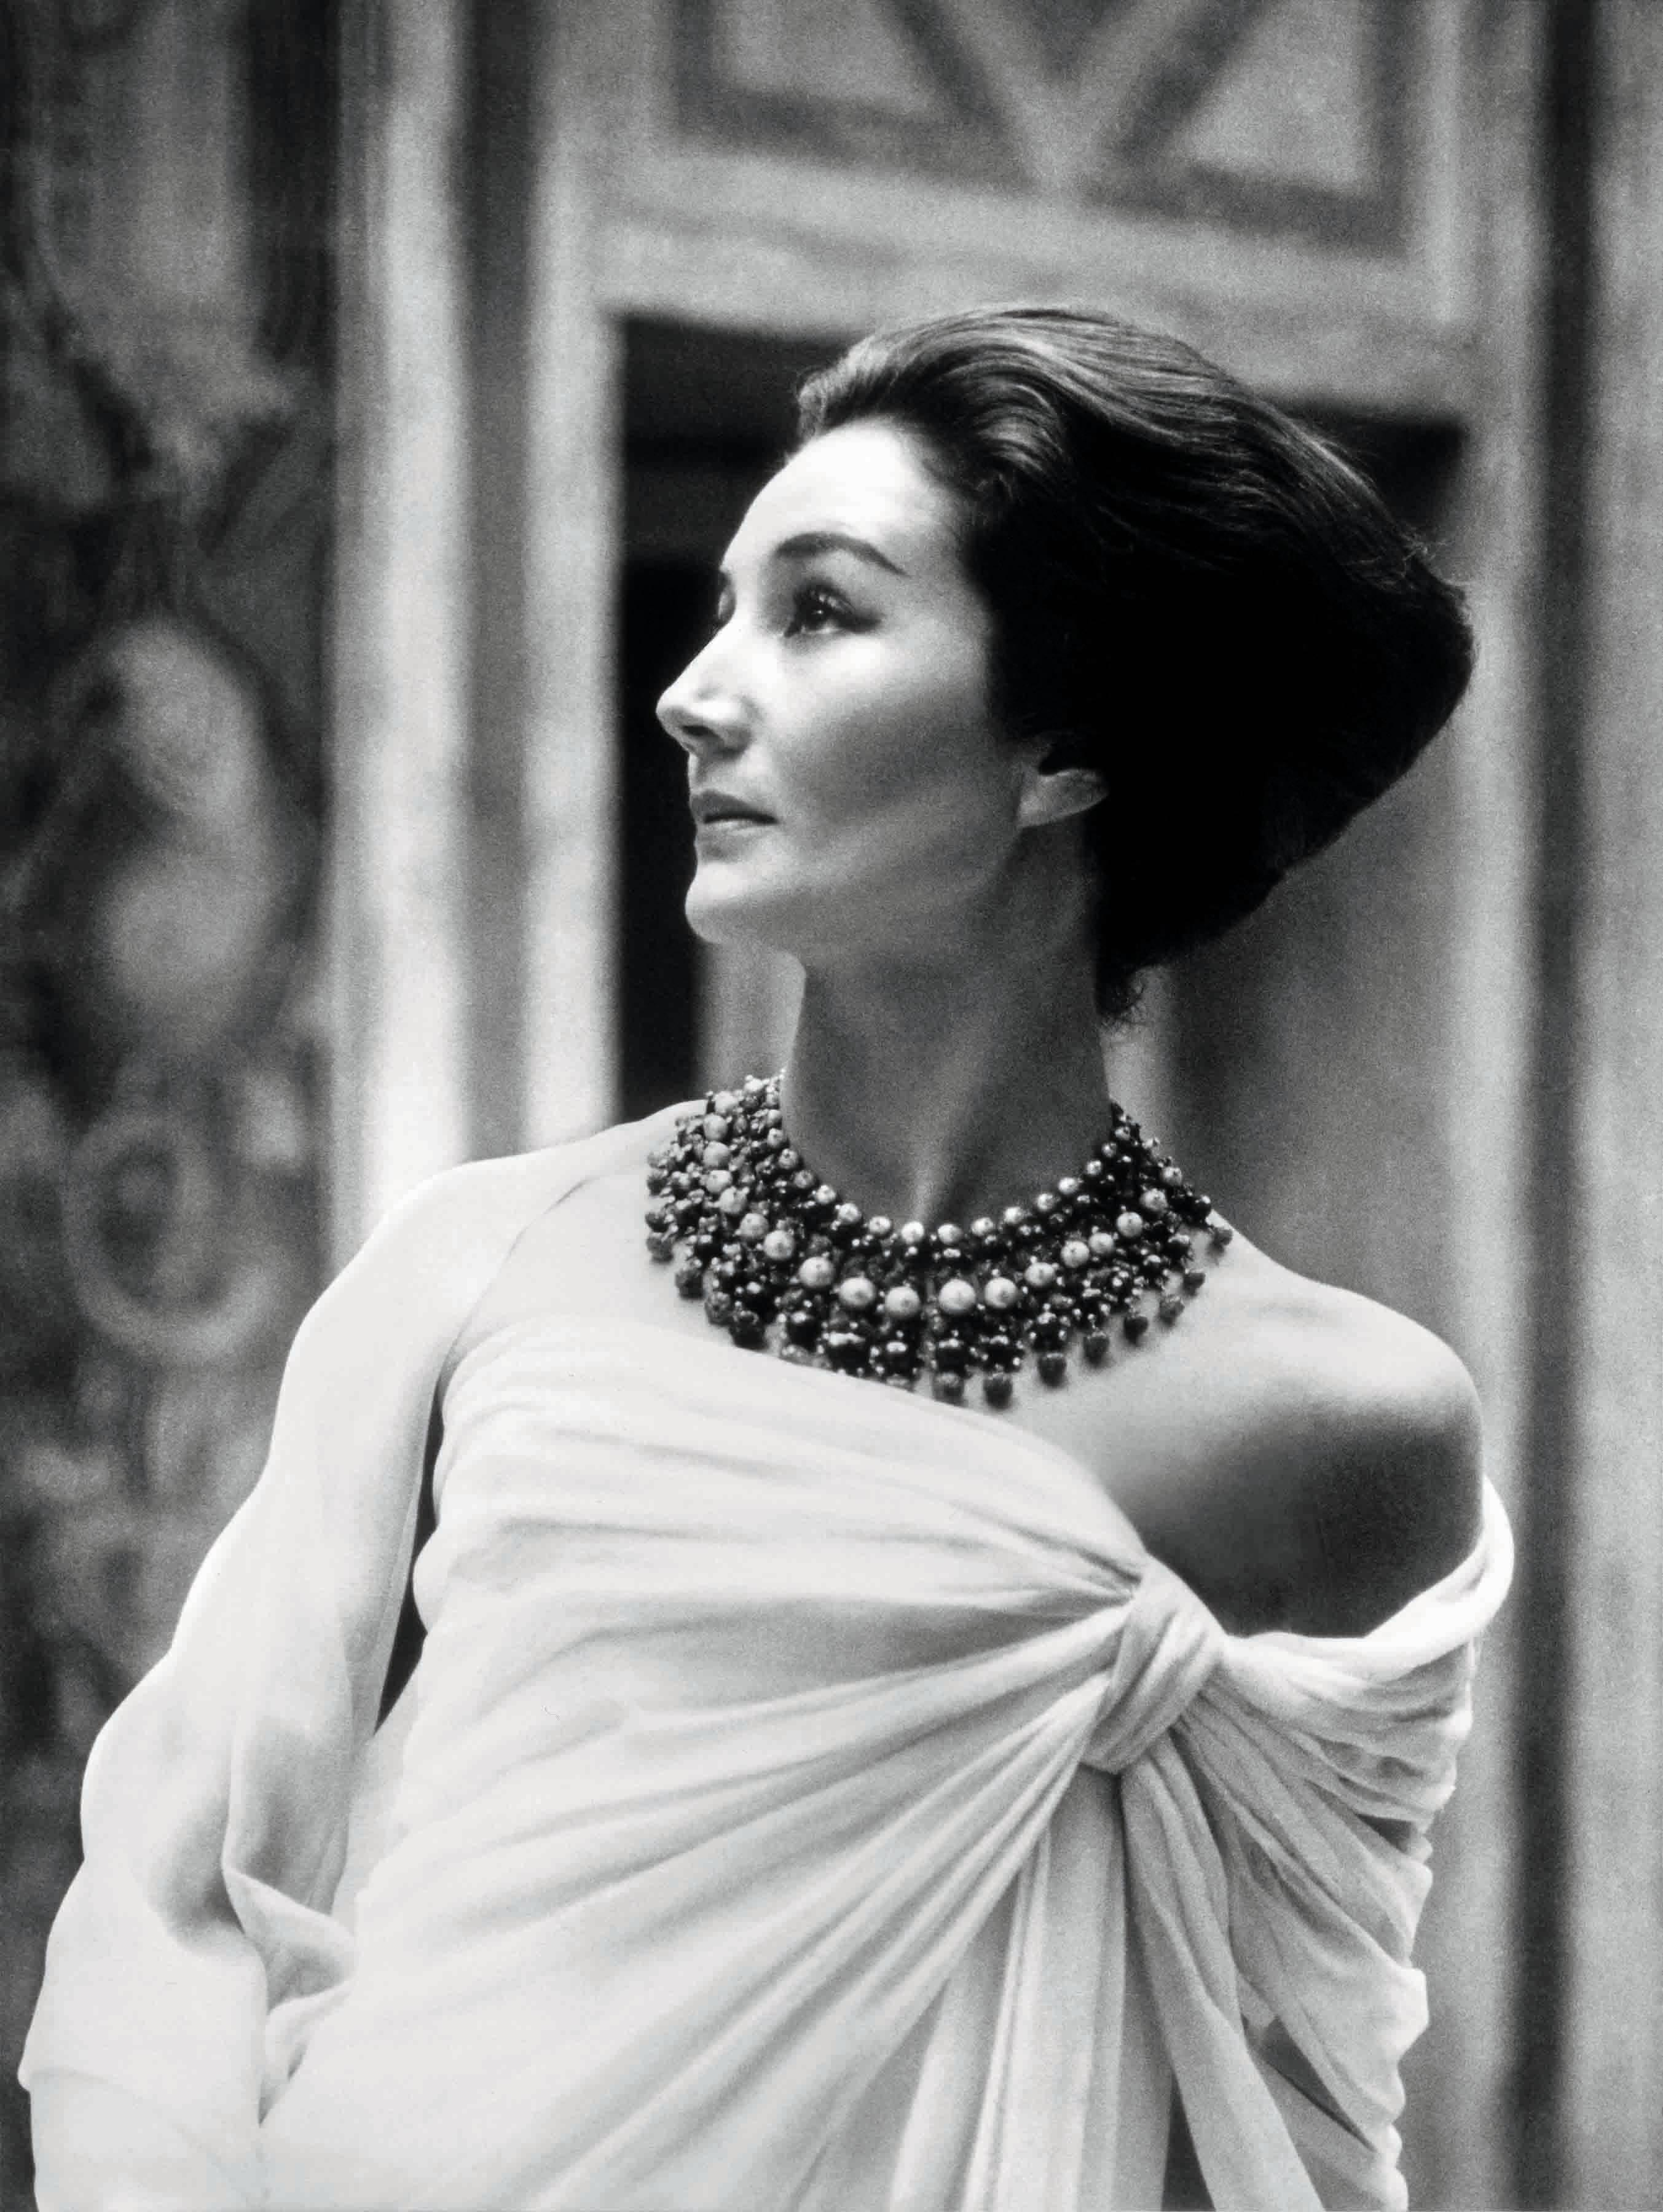 Jacqueline de Ribes in Christian Dior, 1959 |Photo: Roloff Beny/The Metropolitan Museum of Art